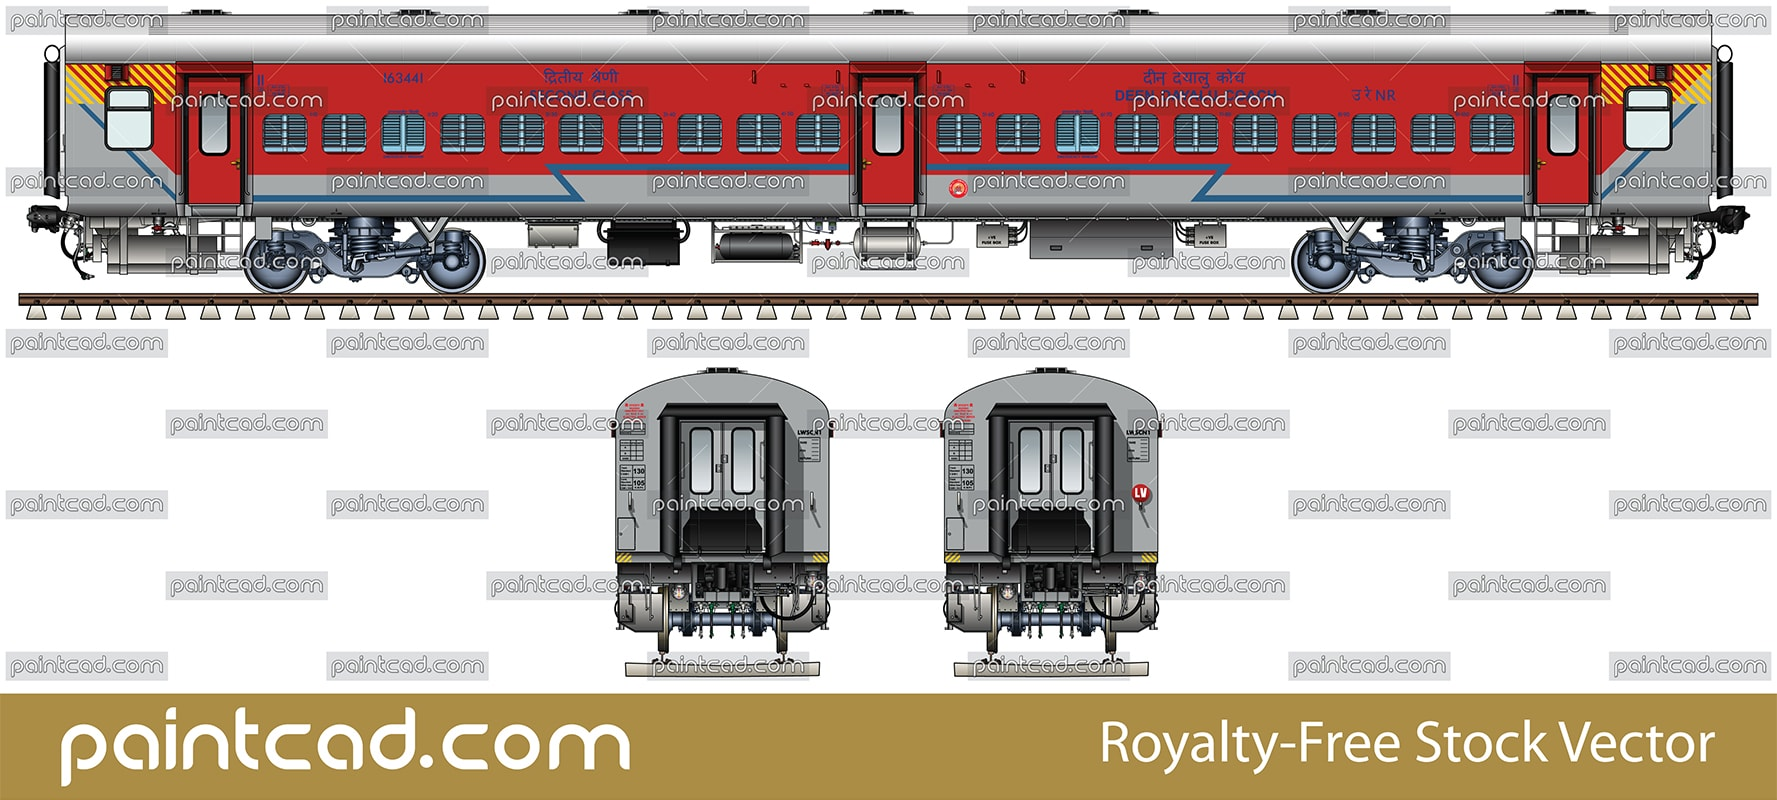 IMPORTANT: EDITORIAL USE ONLY!